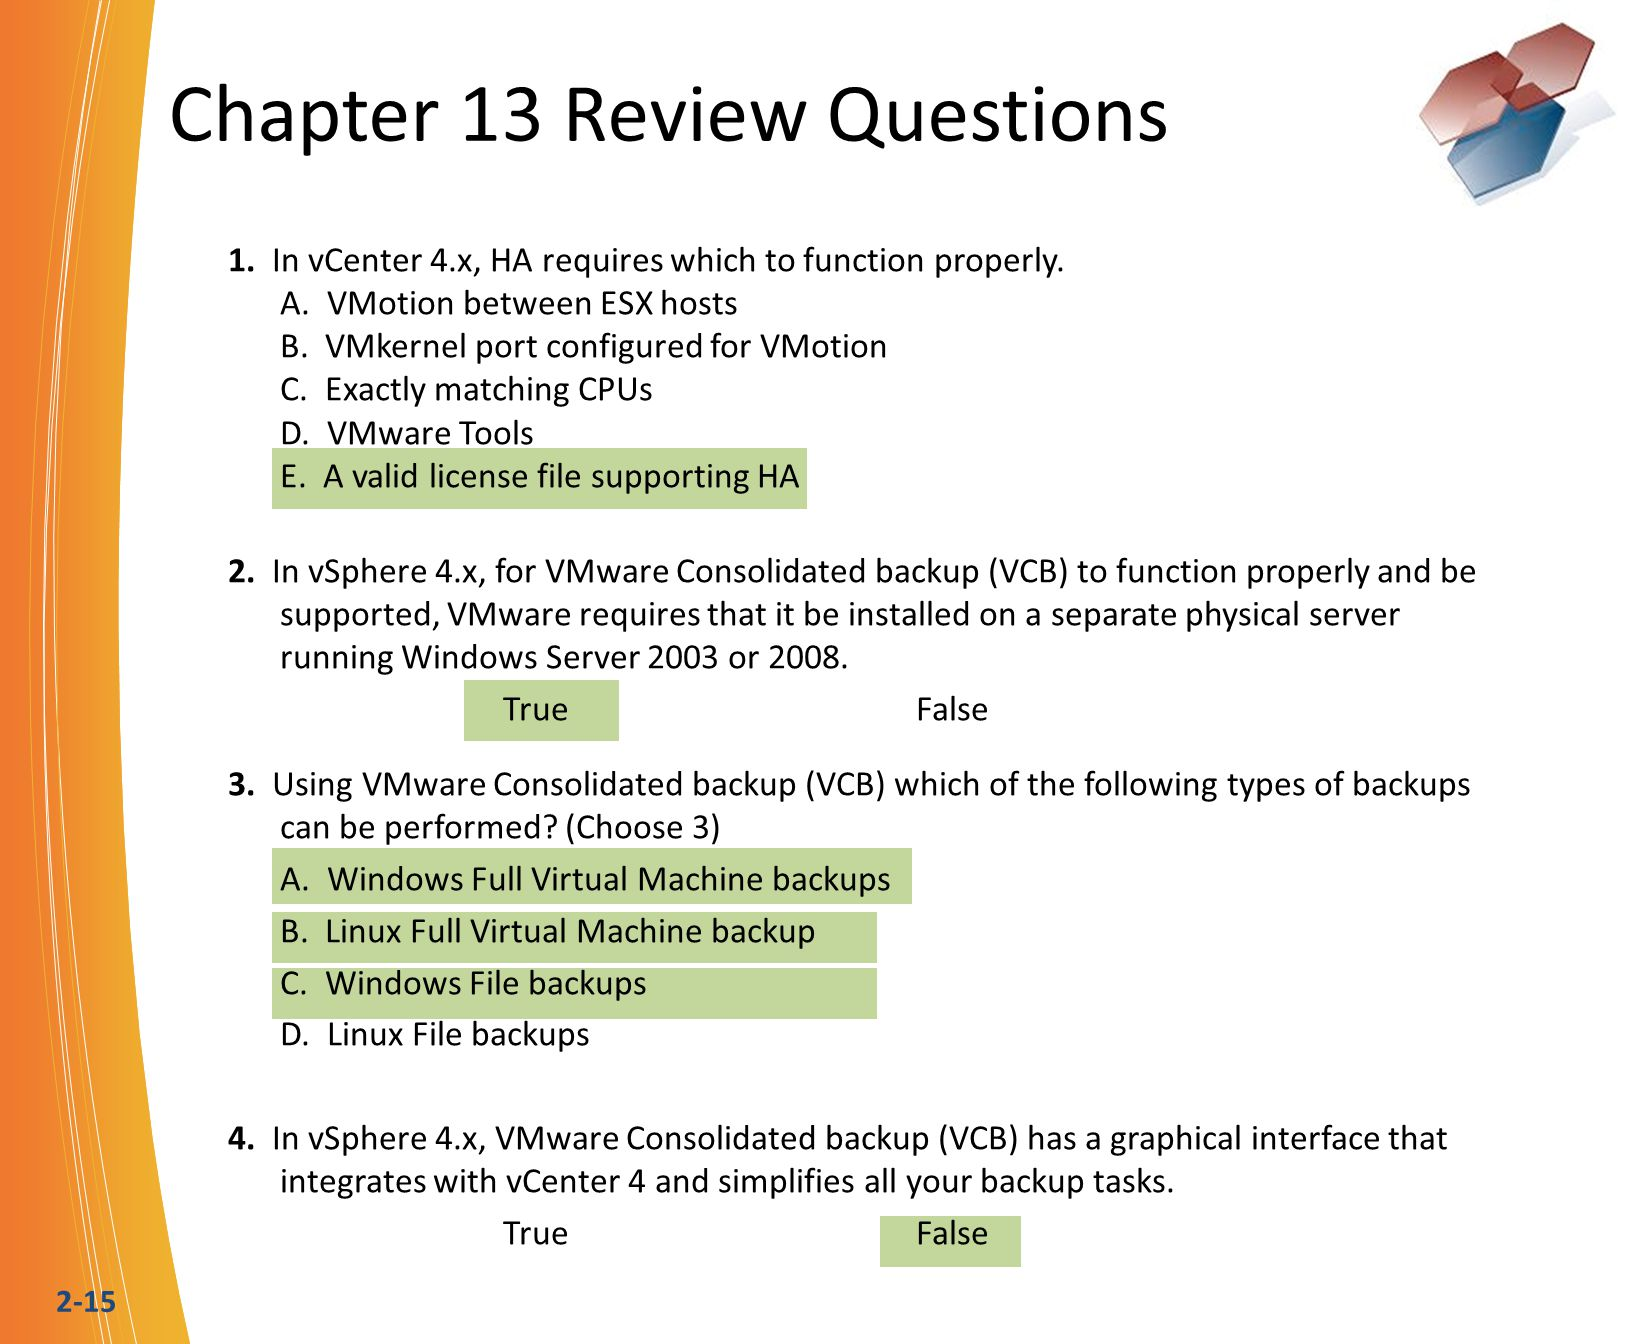 2-15 Chapter 13 Review Questions 1. In vCenter 4.x, HA requires which to function properly.